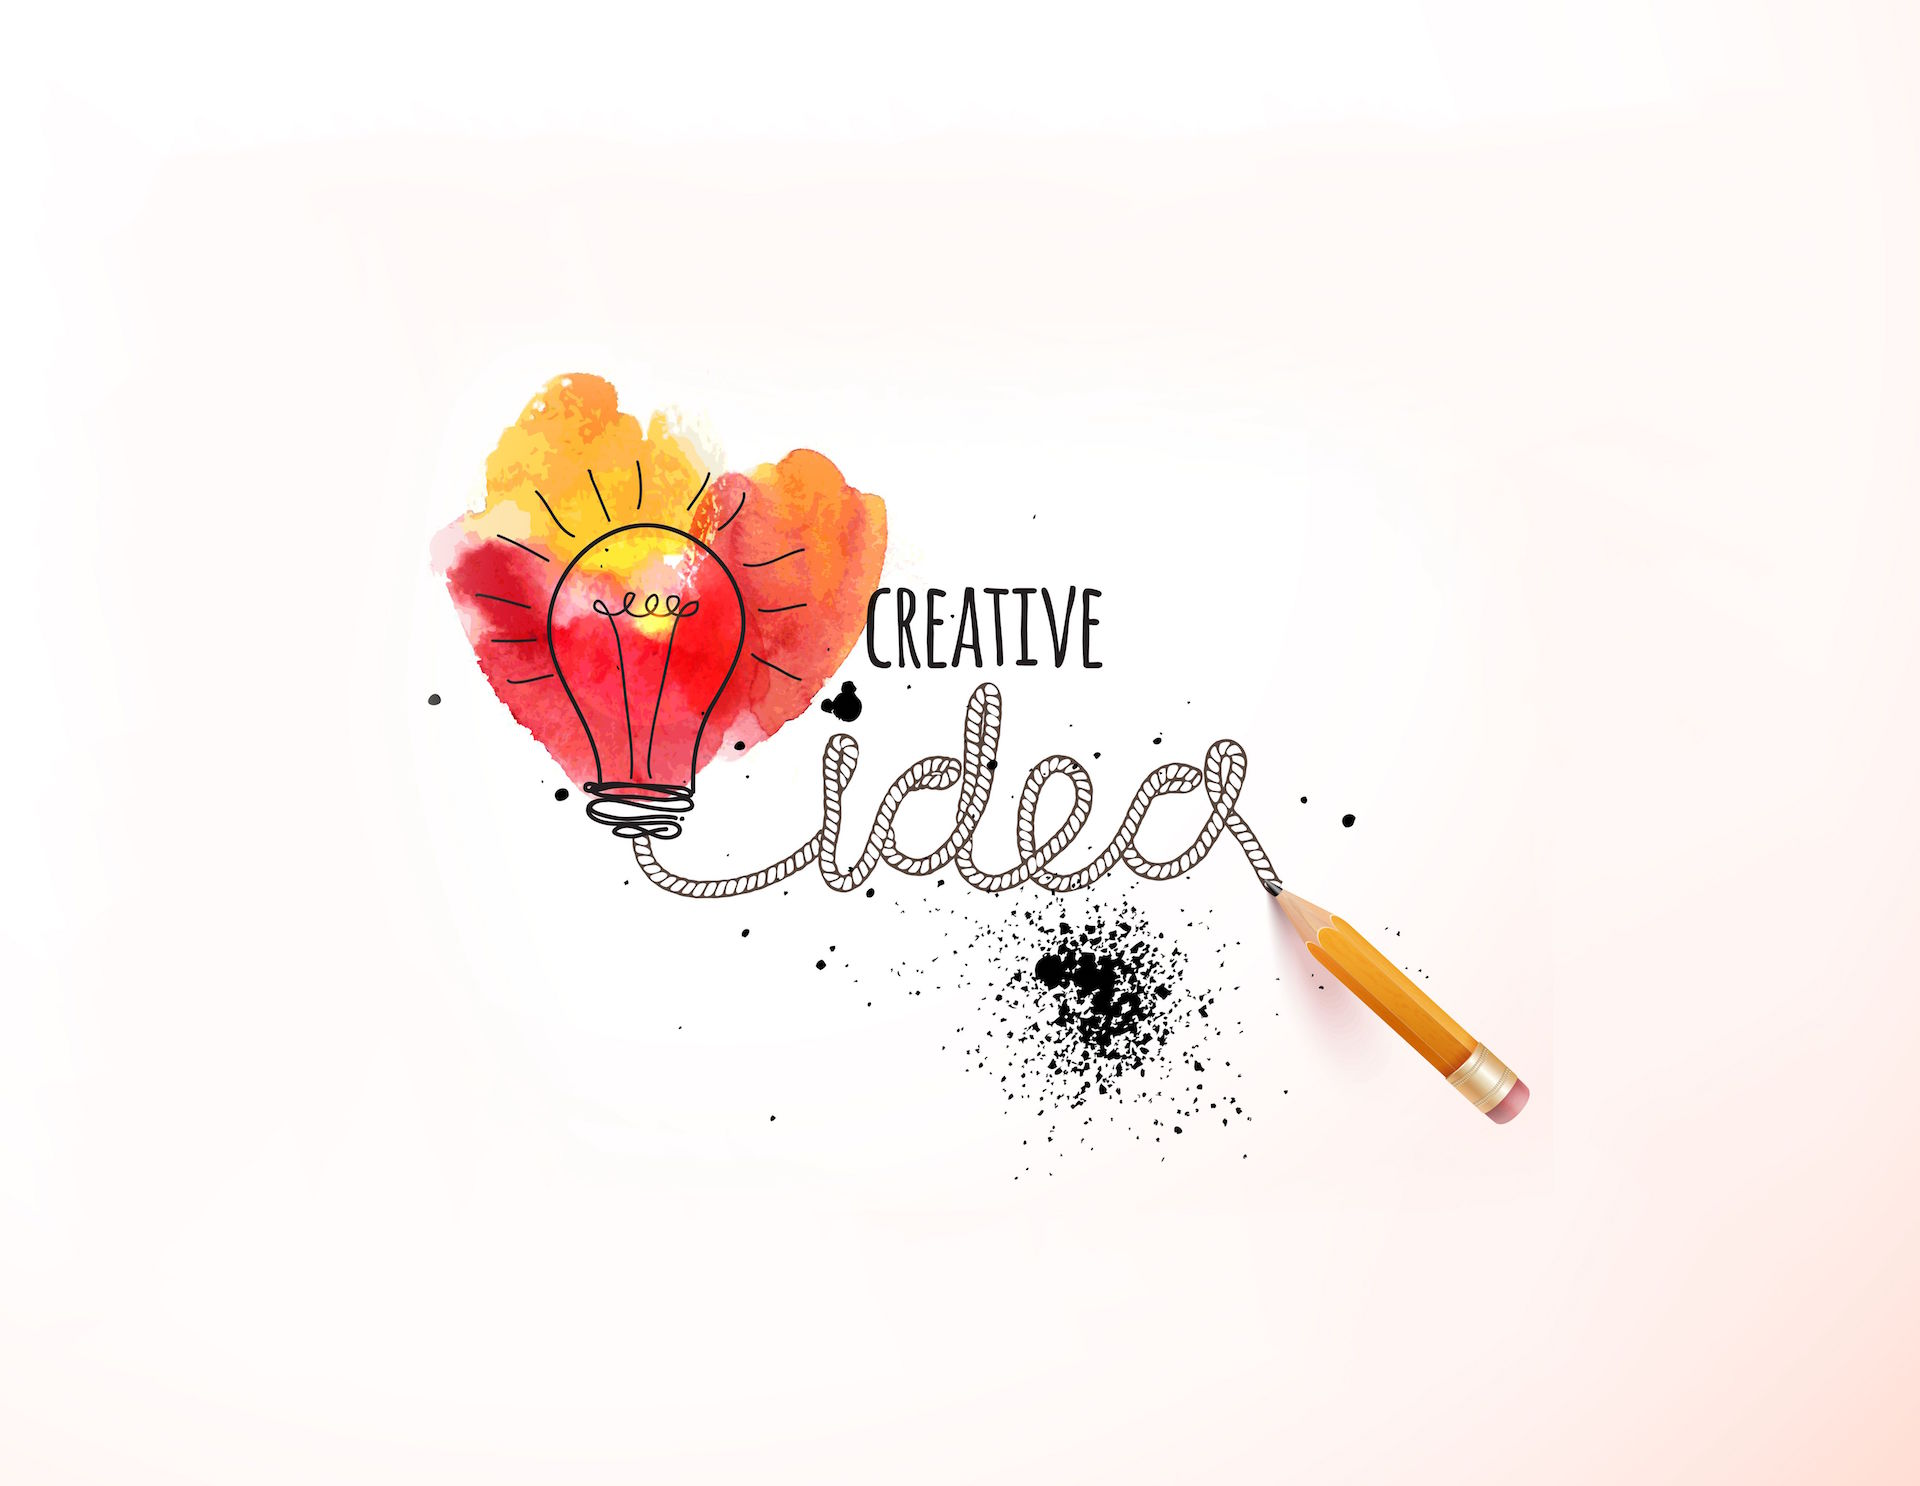 How to Become a Creative Genius in 5 Days [Infographic]